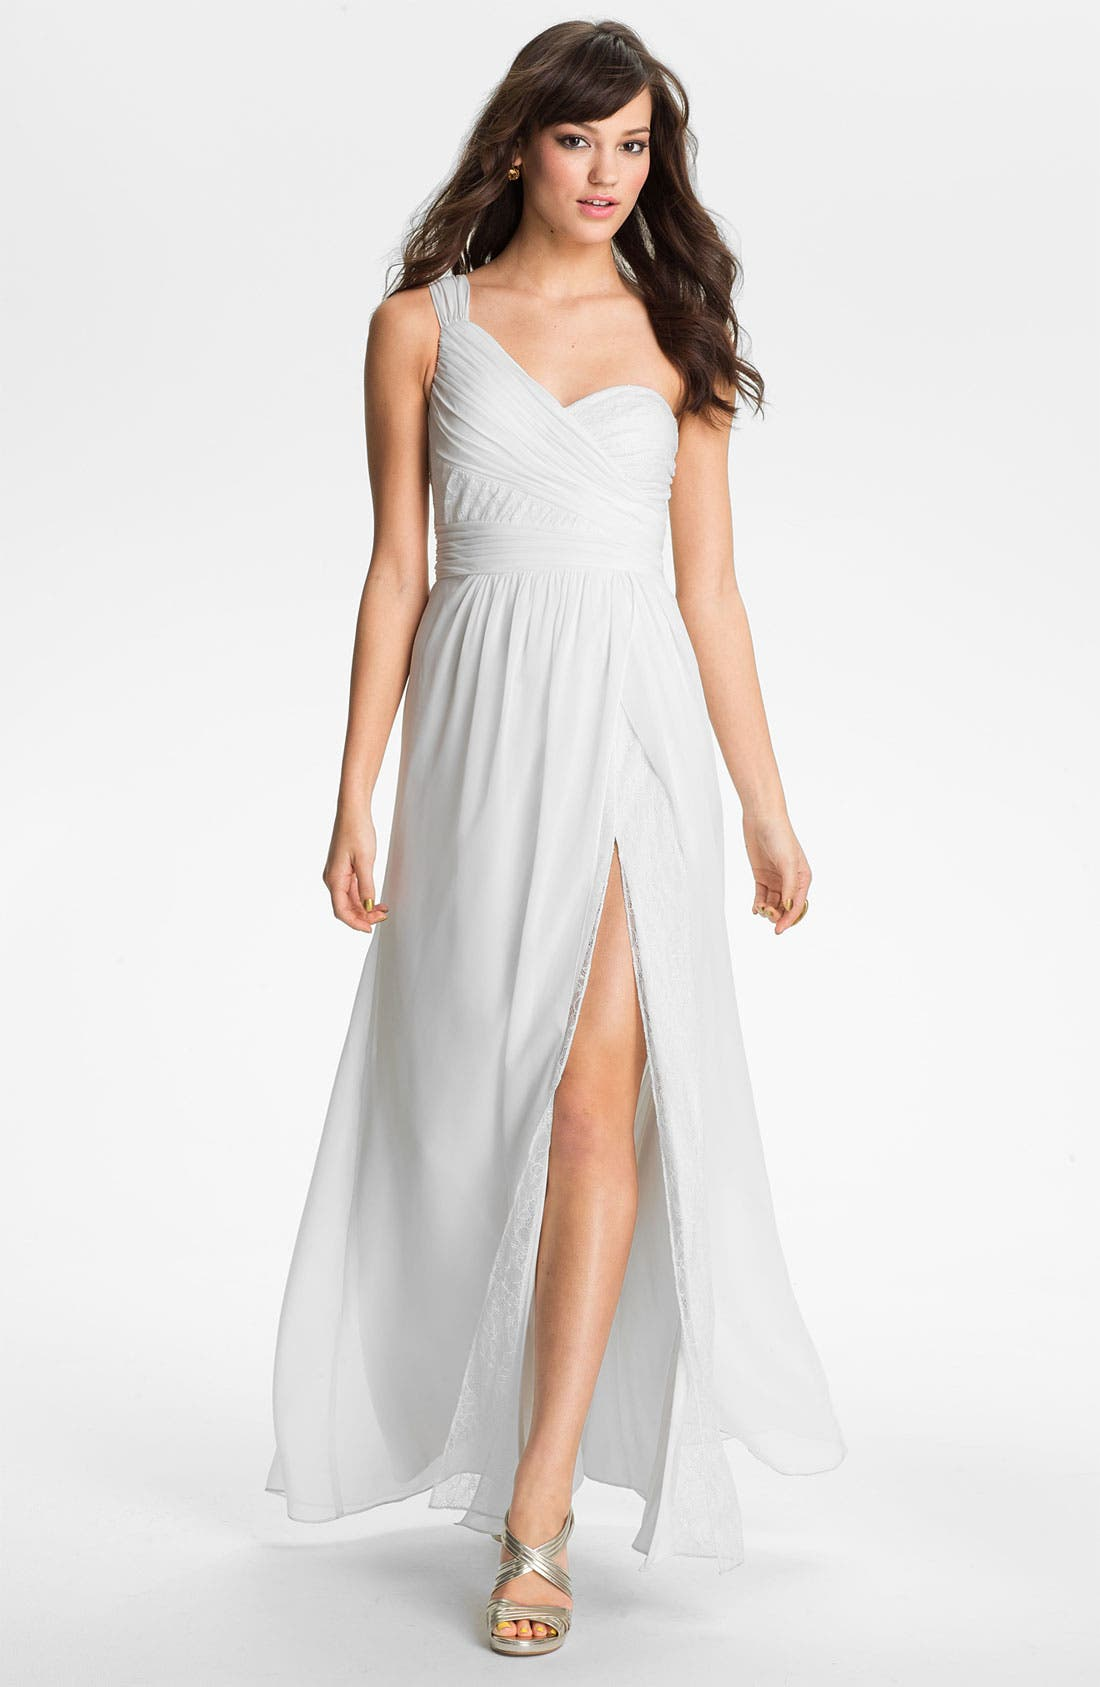 Alternate Image 1 Selected - Hailey by Adrianna Papell One Shoulder Lace & Chiffon Gown (Online Only)